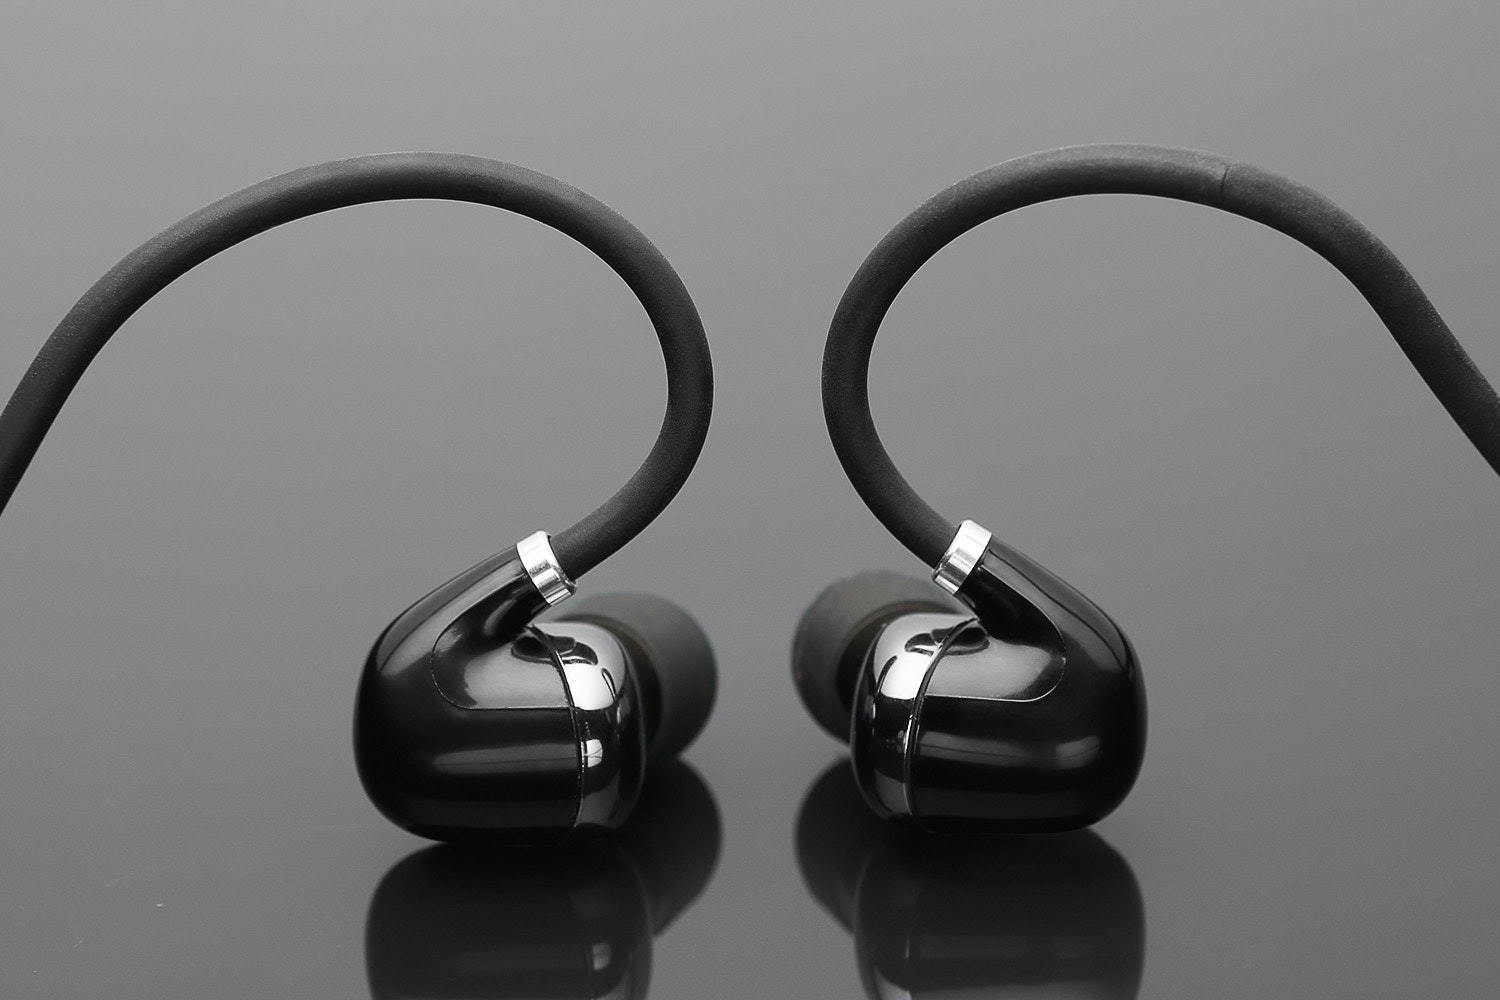 VOXOA Bluetooth 4.1 Water-Resistant SportsBuds 900